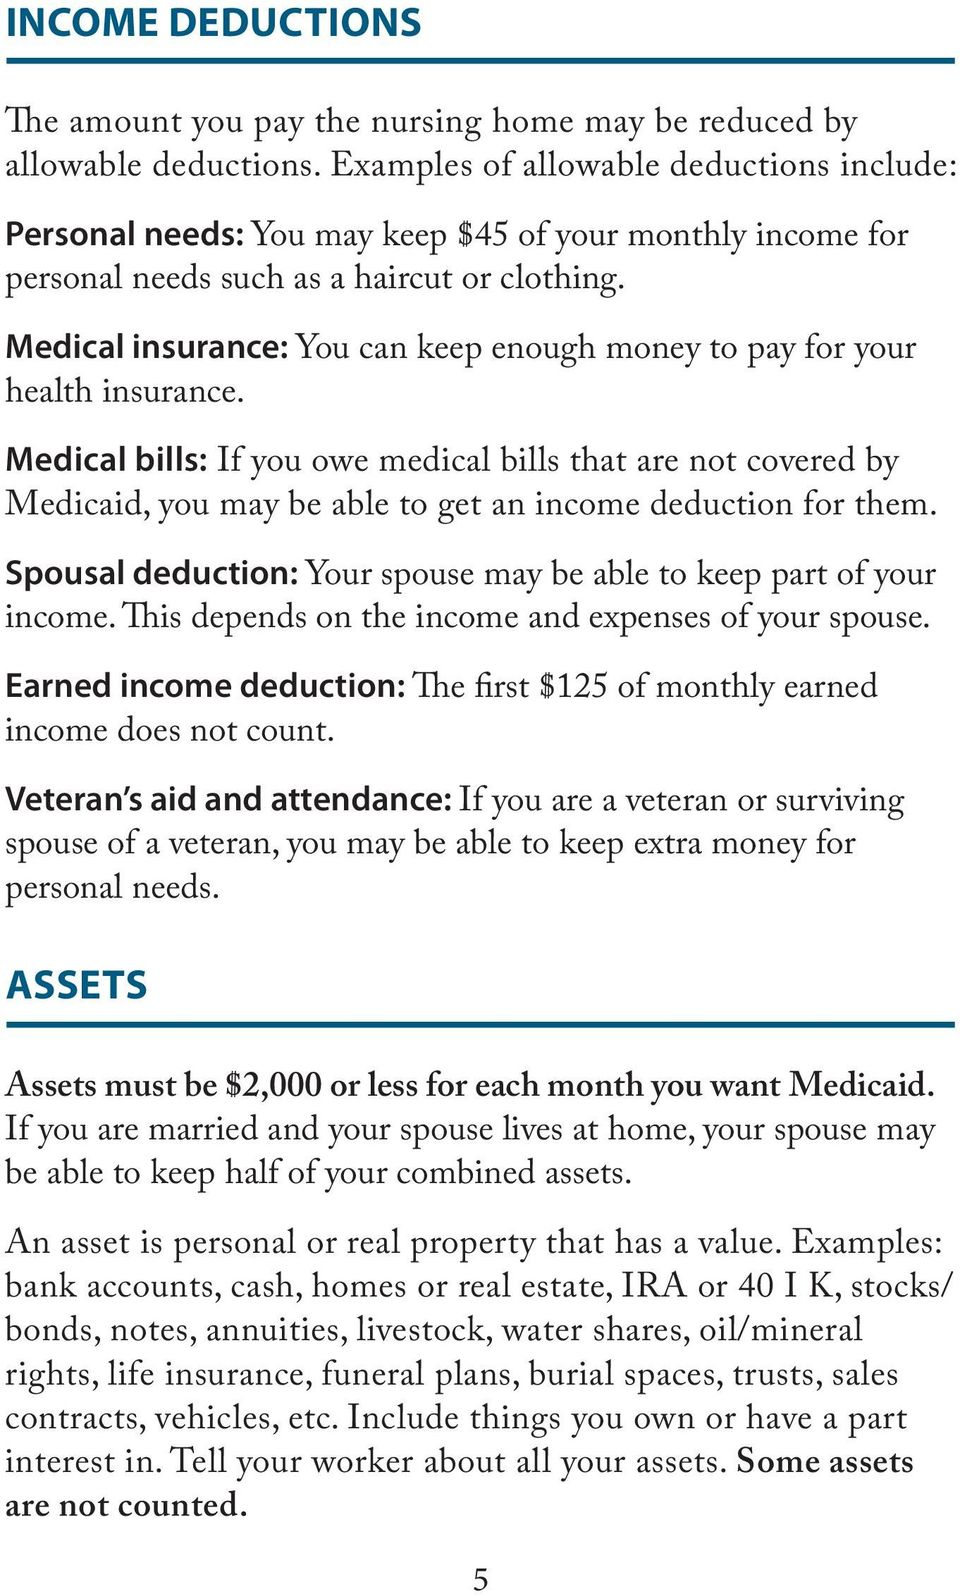 Medical insurance: You can keep enough money to pay for your health insurance.